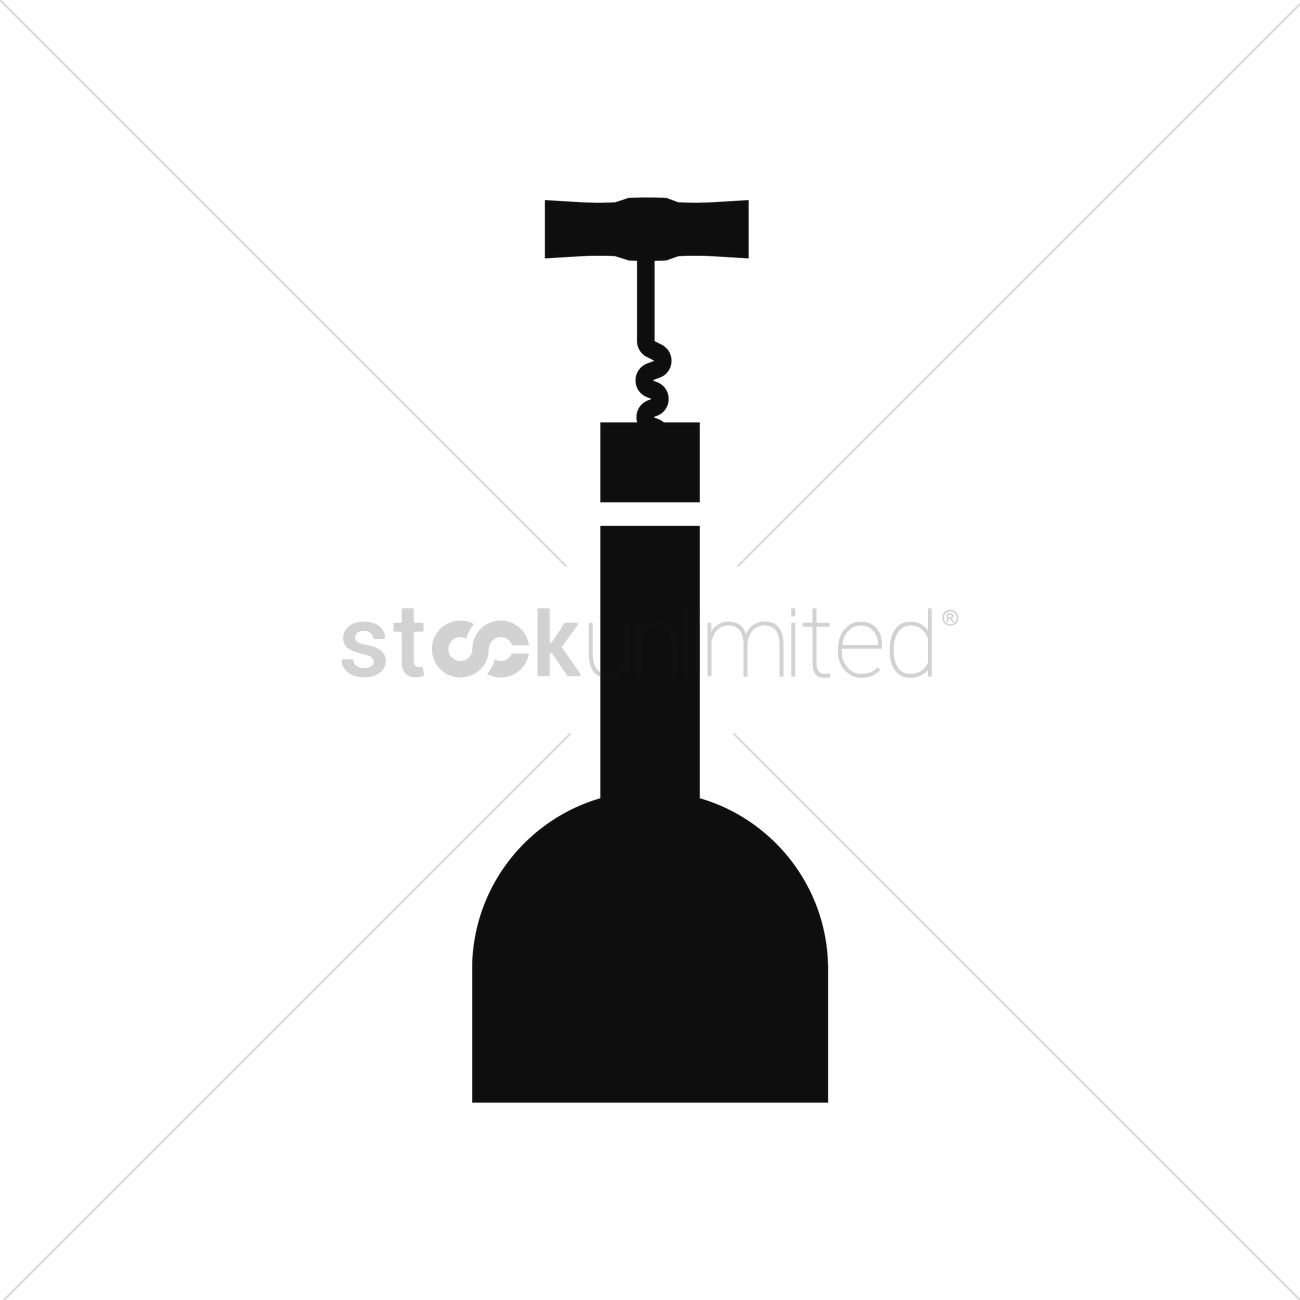 wine bottle with corkscrew vector image 1517131 stockunlimited. Black Bedroom Furniture Sets. Home Design Ideas